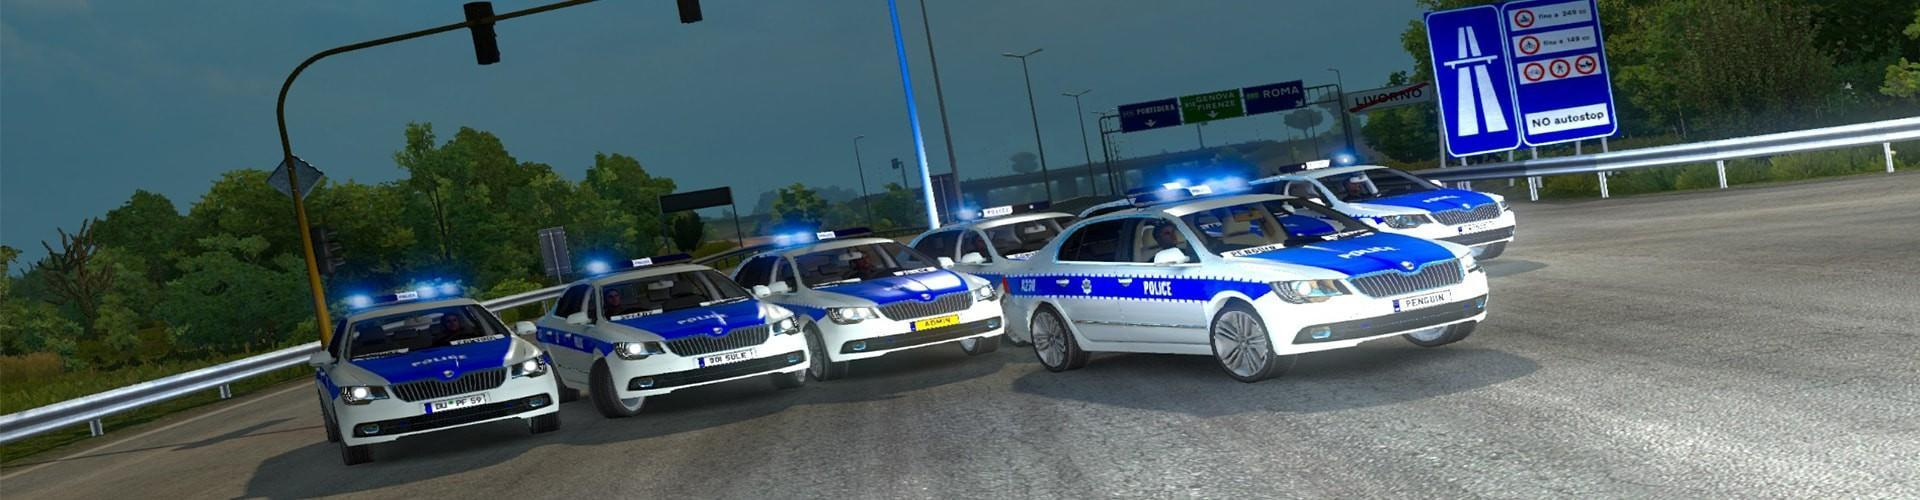 TruckersMP%20Real%20Operations%20V3.1517